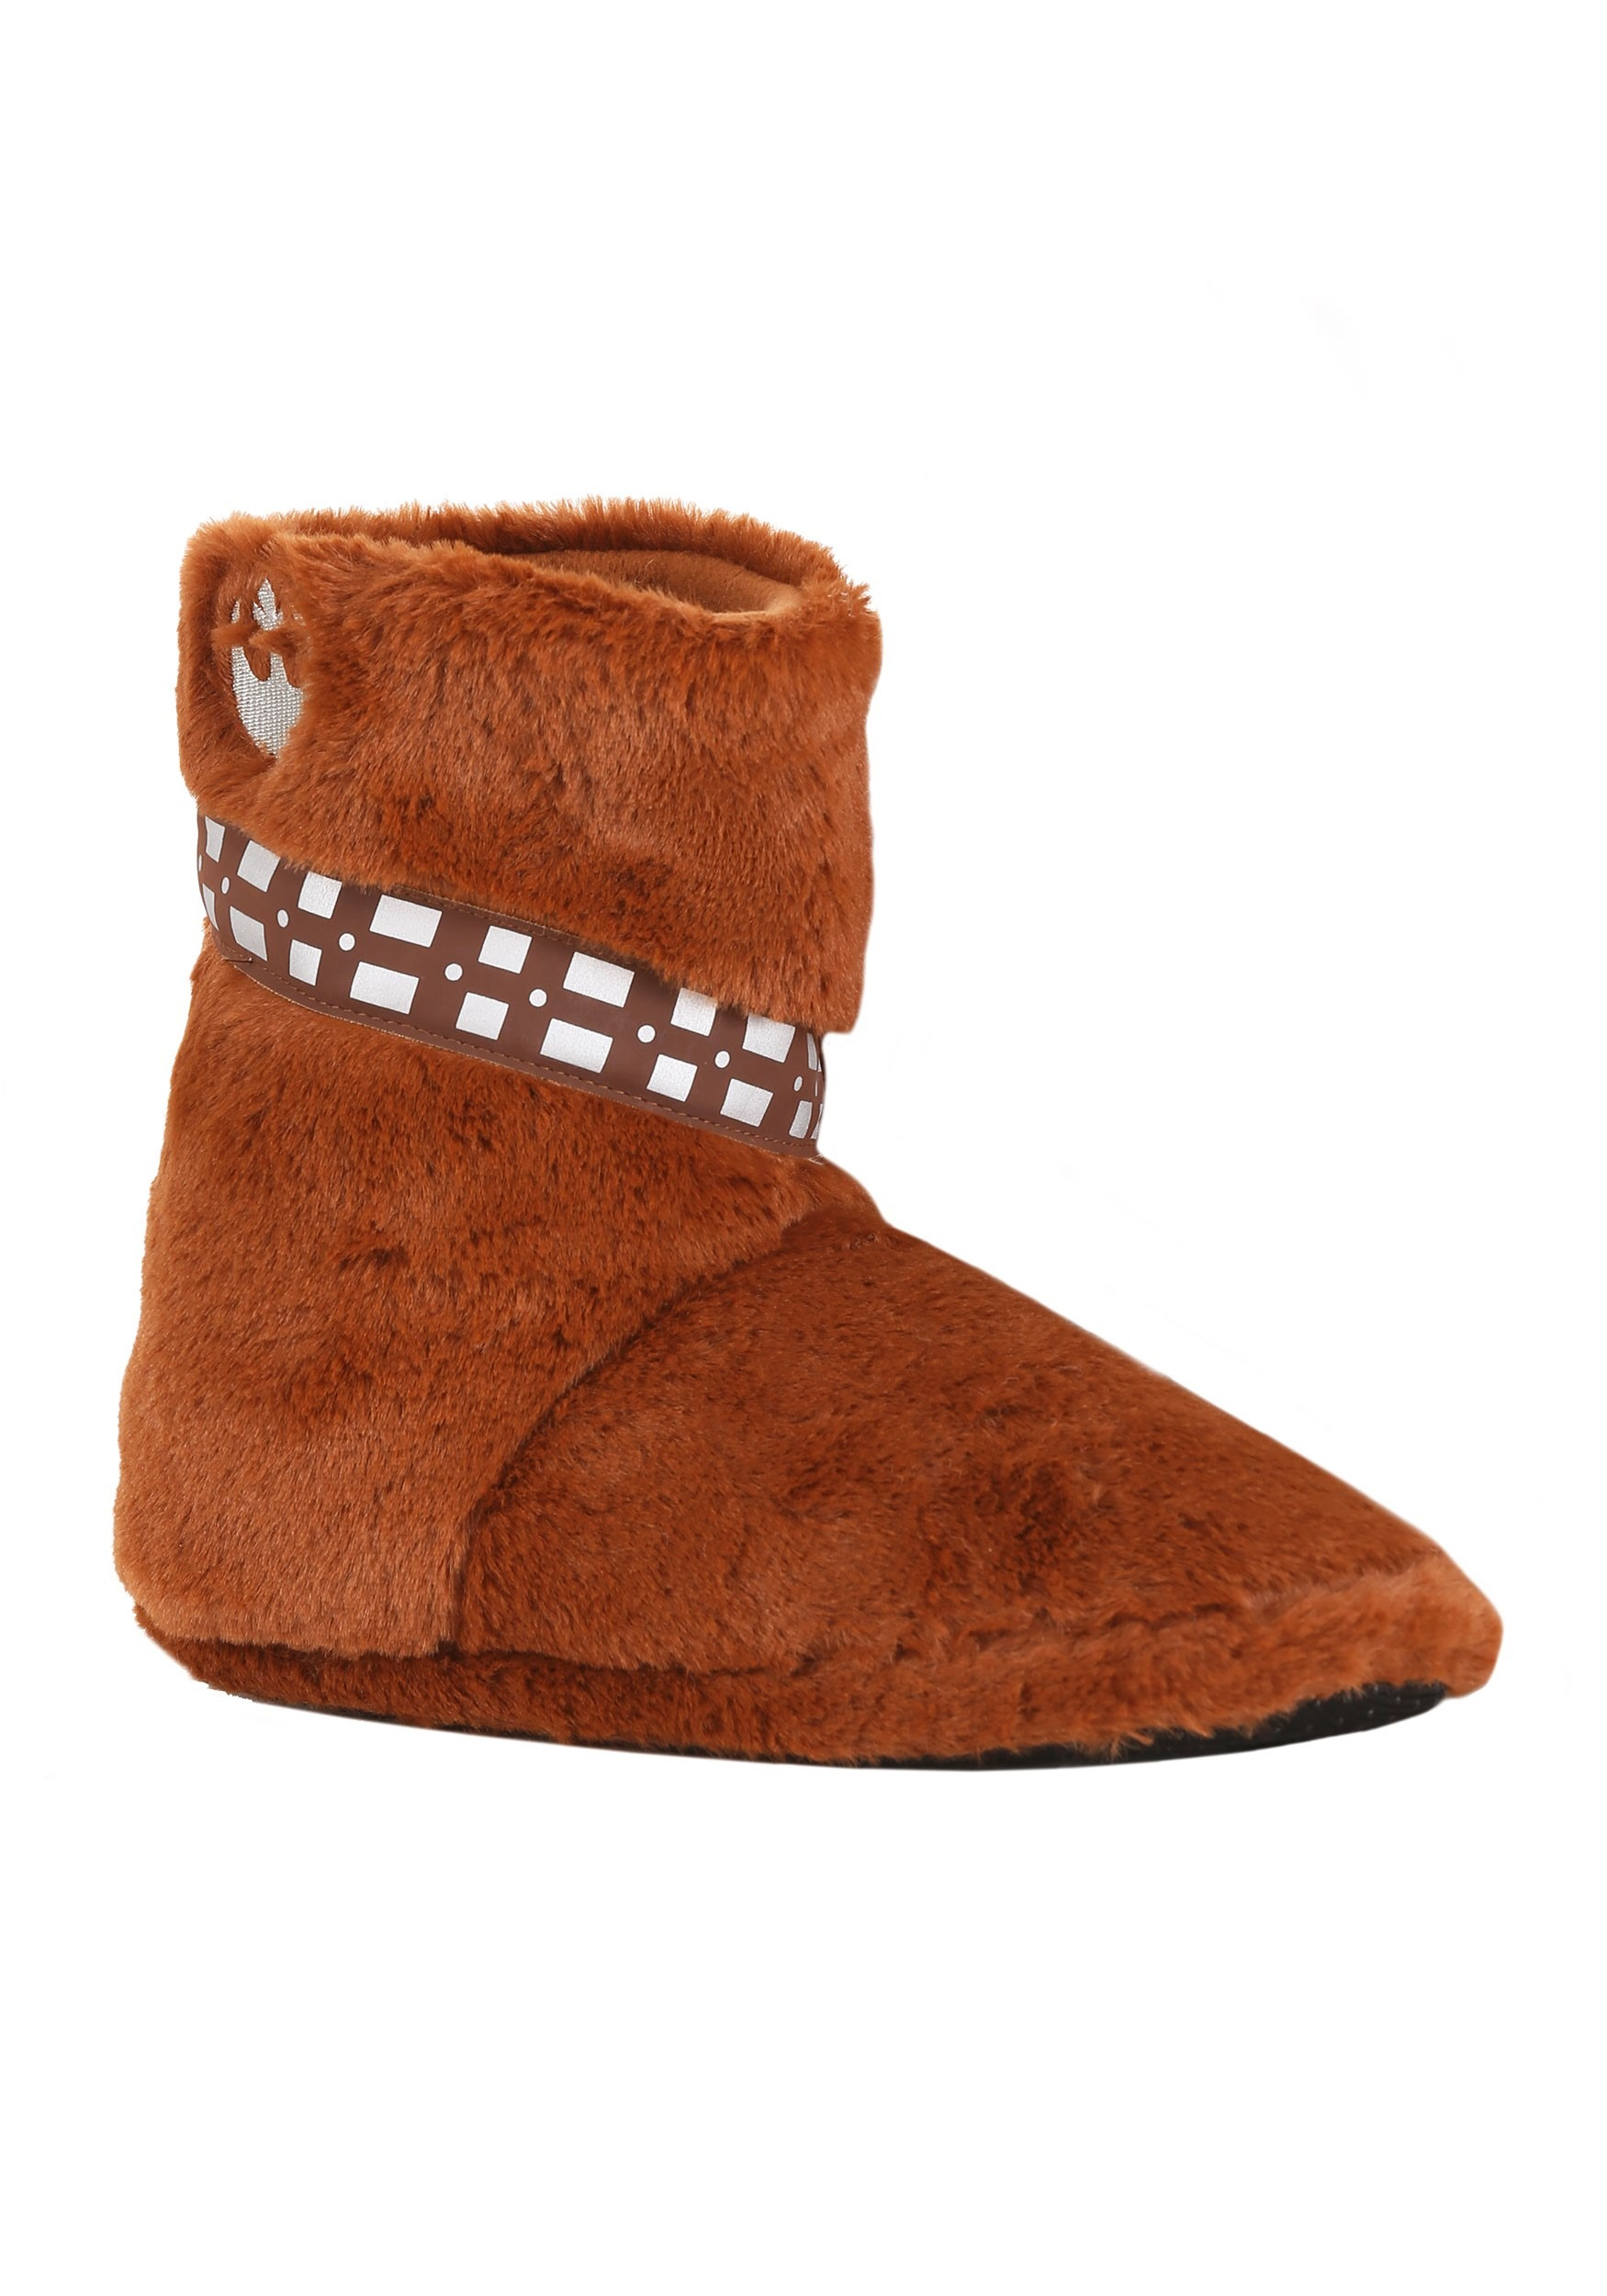 Star Wars Chewbacca Furry Slippers for Men